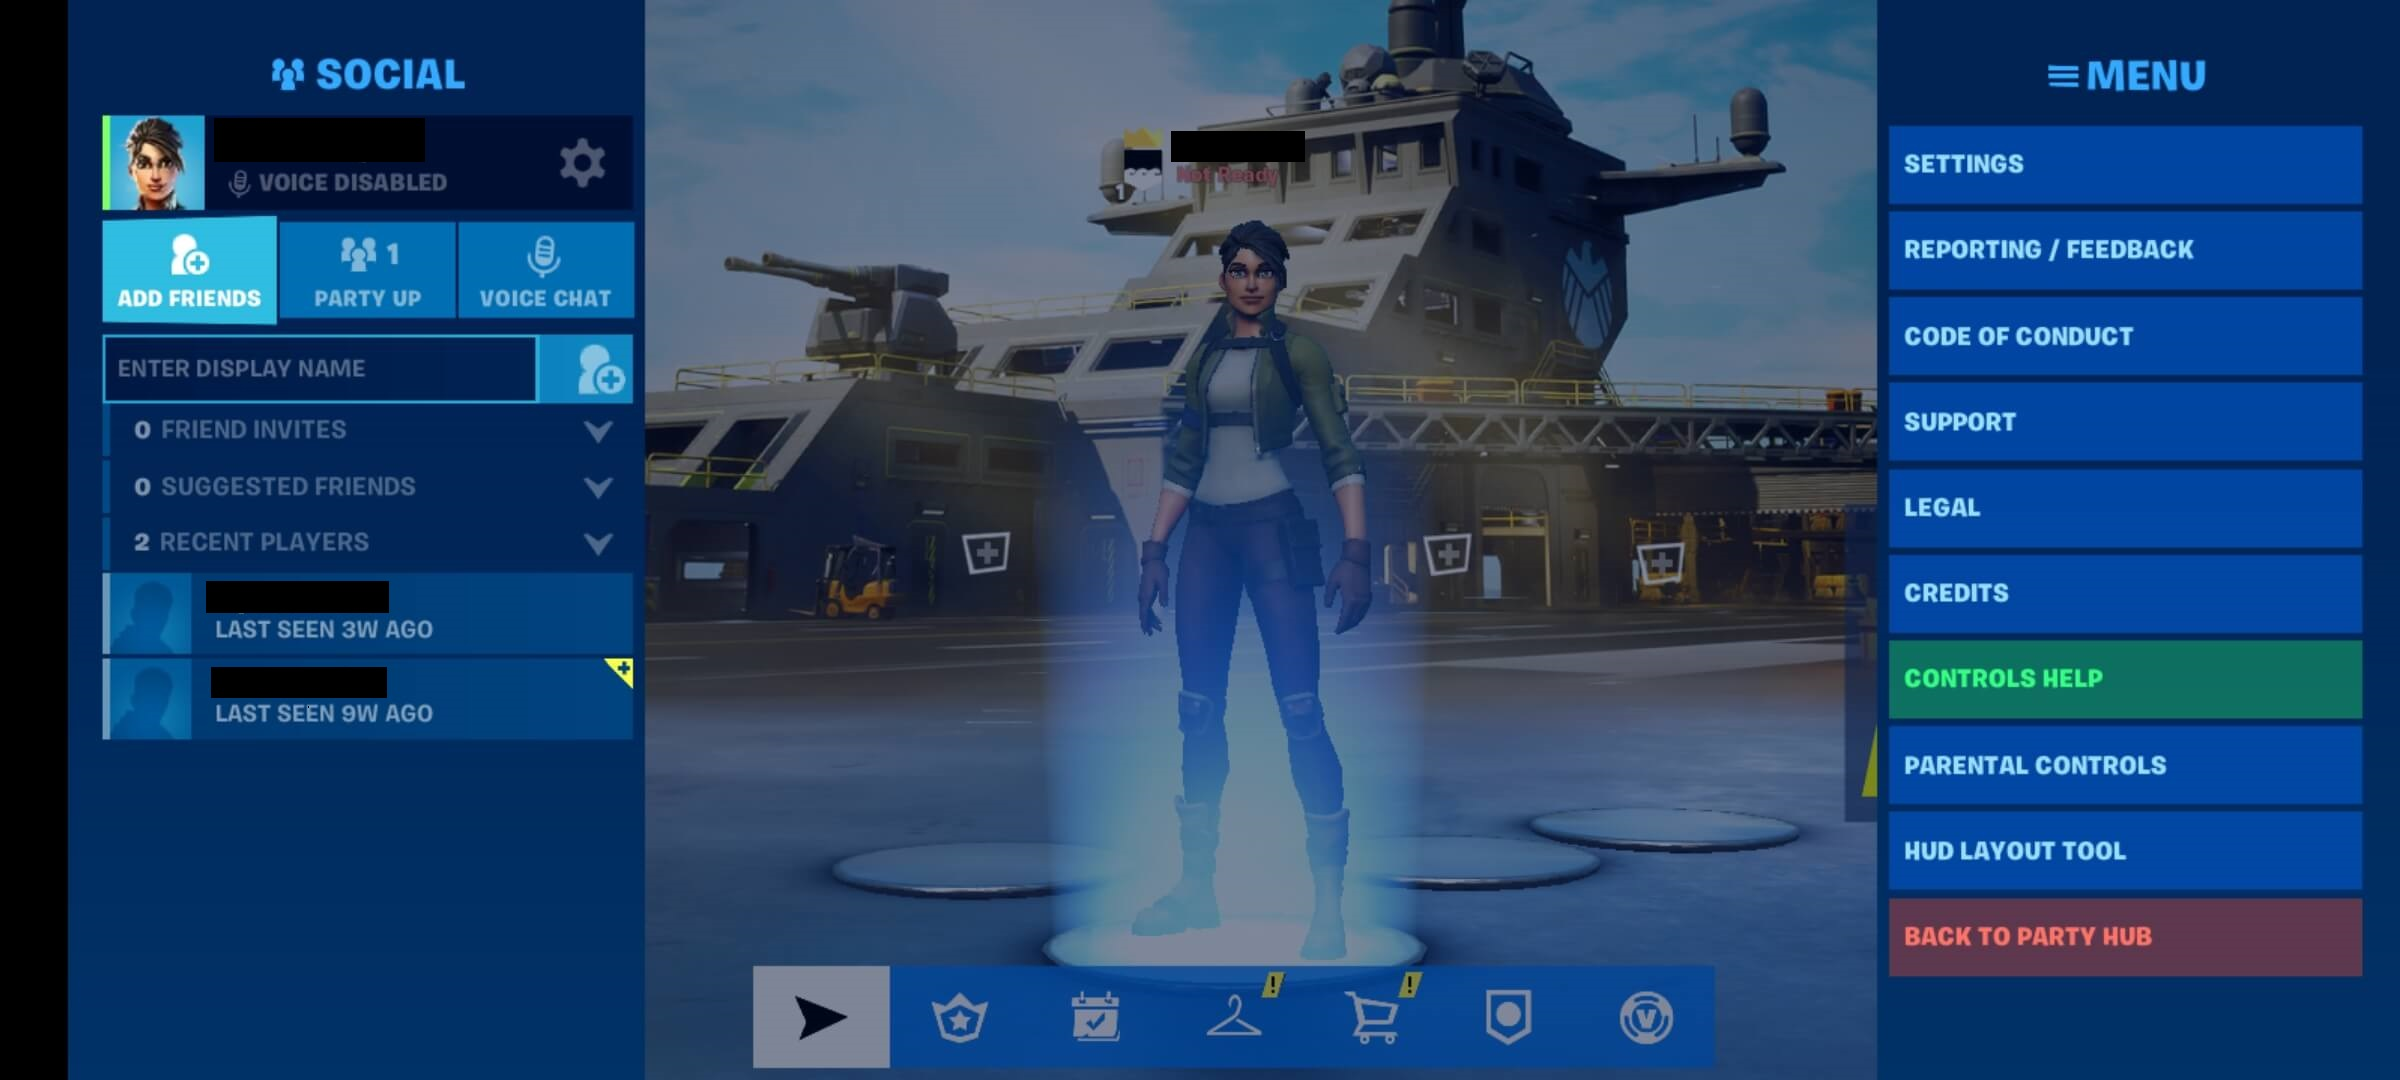 Accept Friend Request Pc Ps4 Fortnite How To Crossplay Fortnite On Mobile With Other Platforms